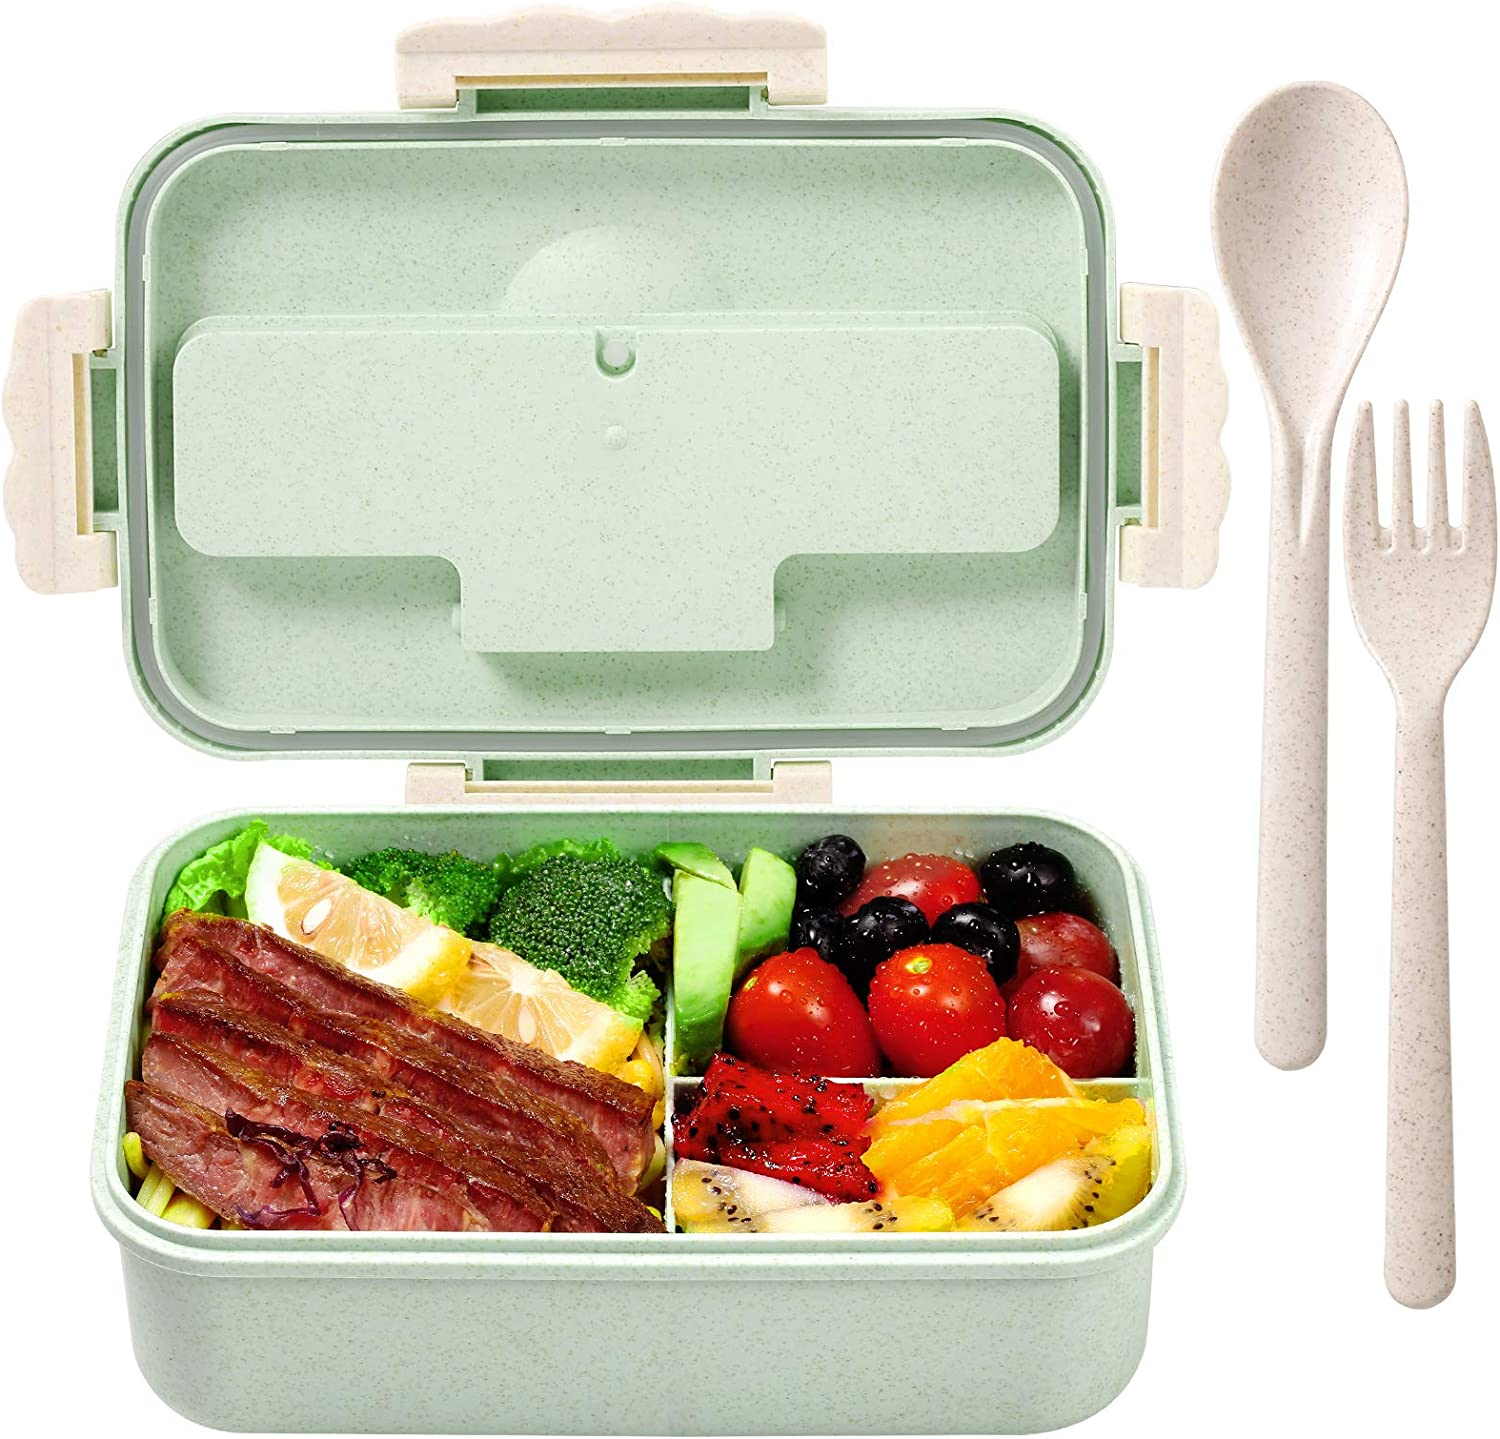 Bento Box for Adults Lunch Containers for Kids 3 Compartment Lunch Box Food Containers Leak Proof Microwave Safe(Flatware Included,Nordic Green)